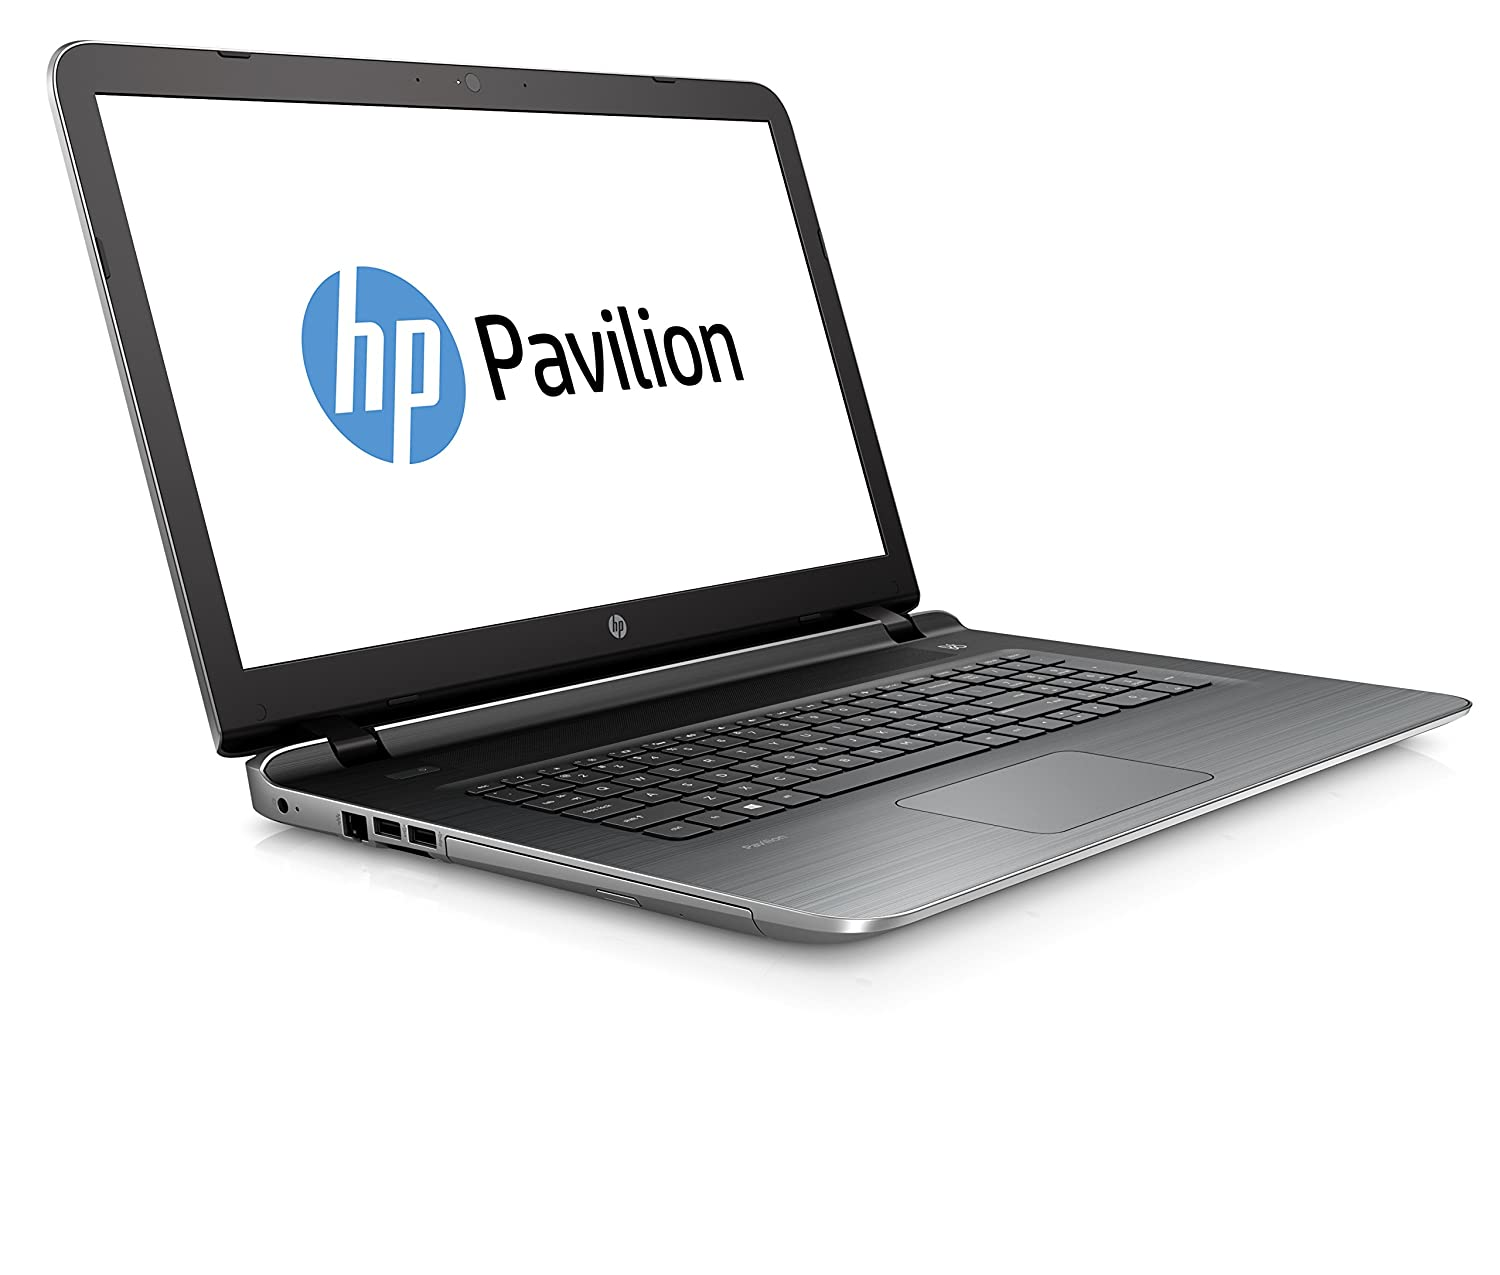 HP Pavilion 17-g115ng 17 Zoll Notebook